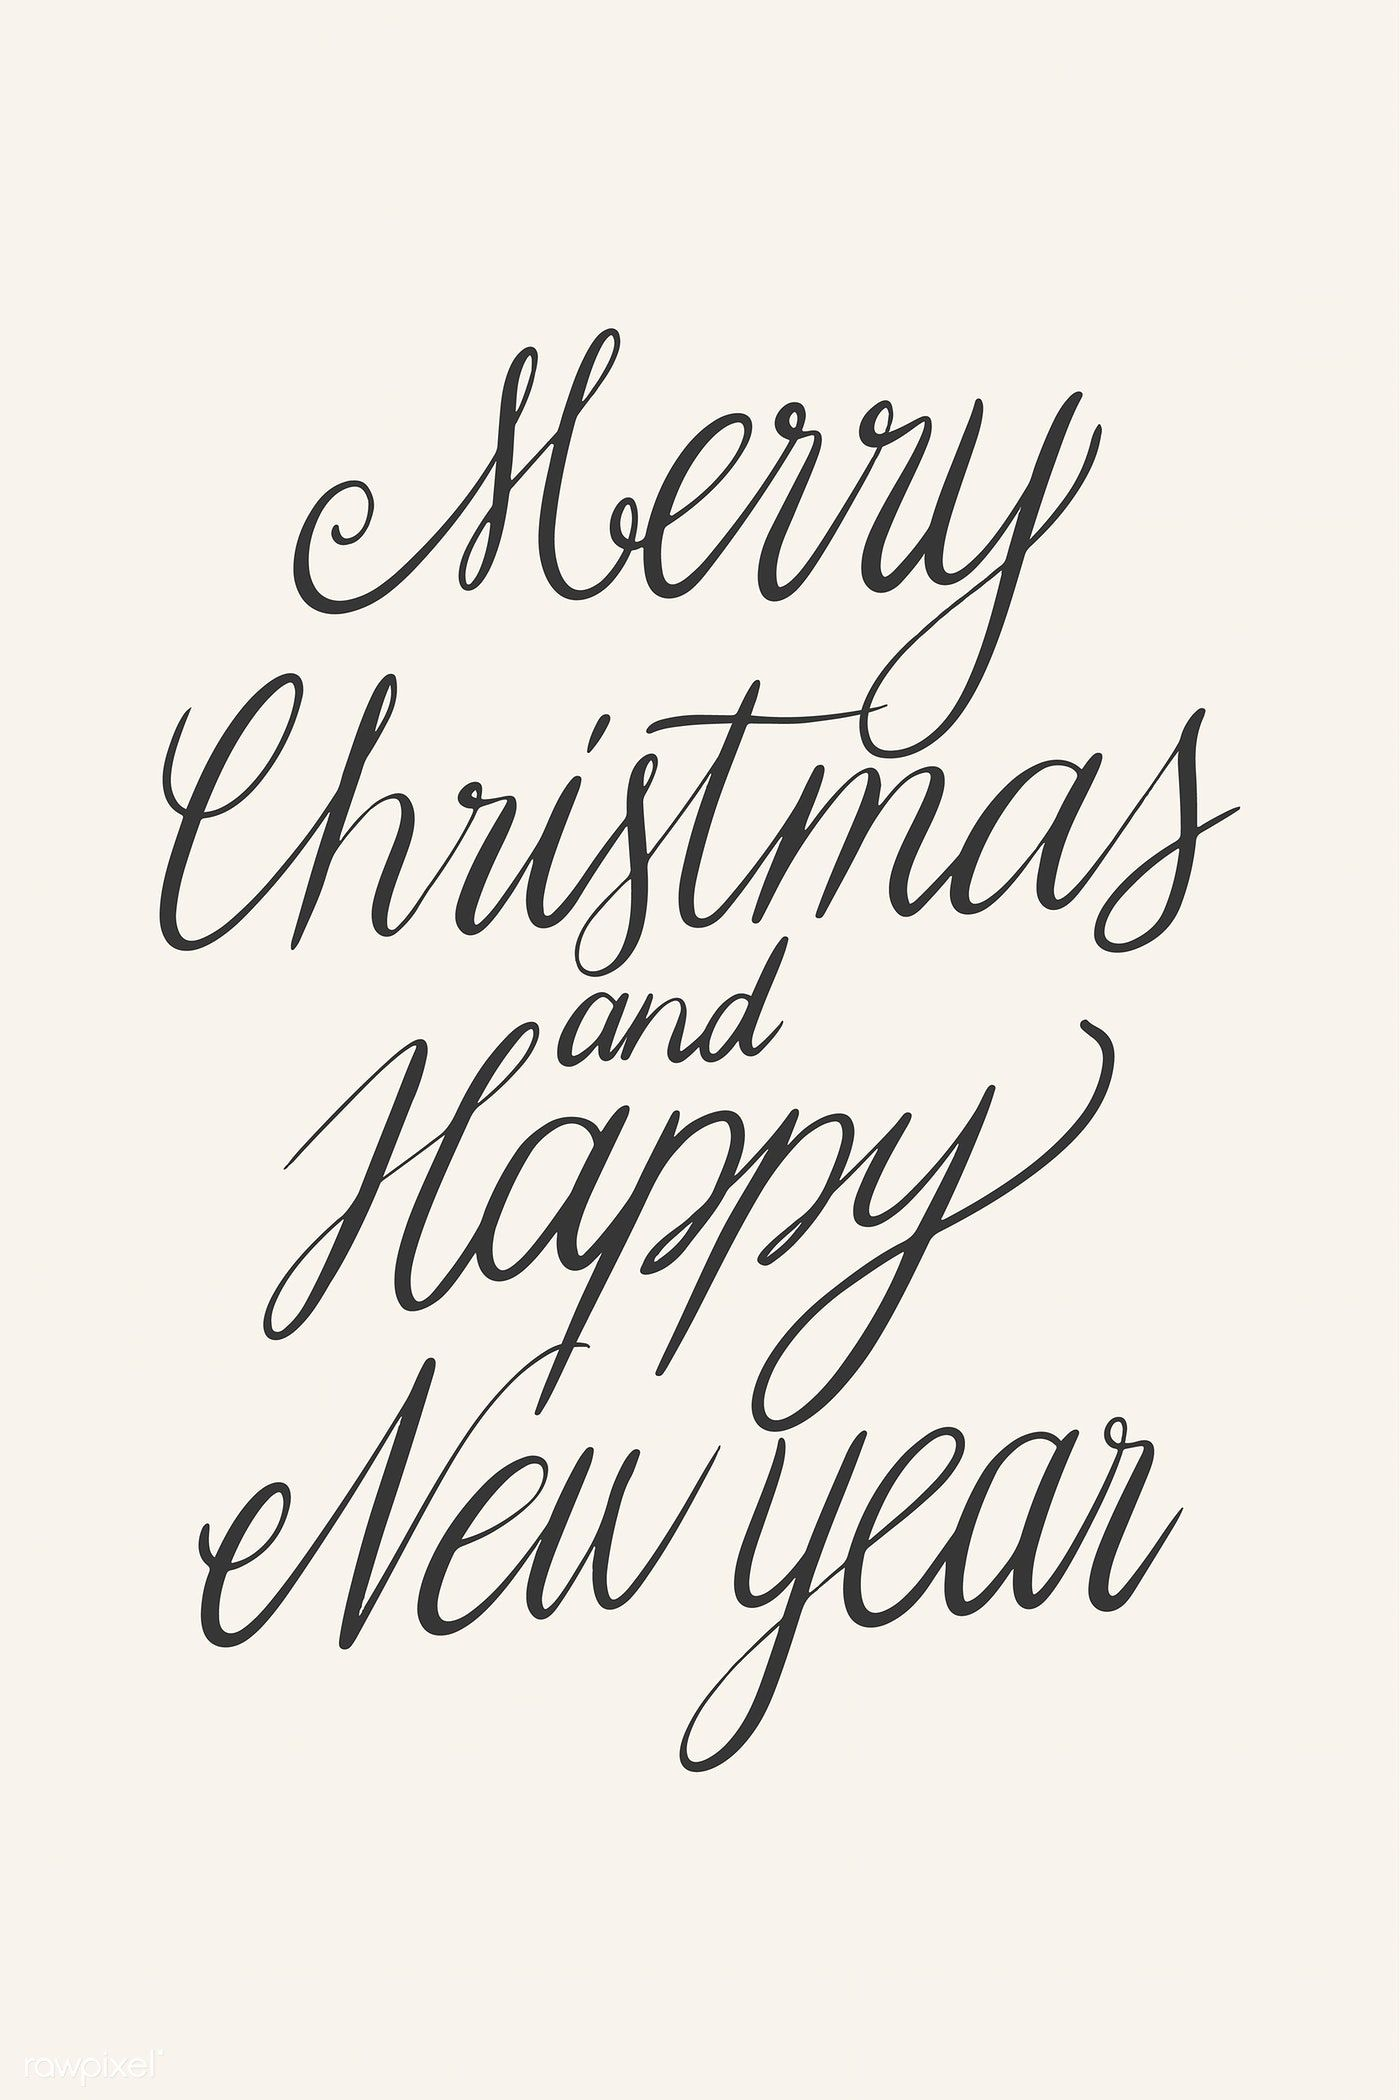 Download Premium Vector Of Merry Christmas And Happy New Year Card Design New Year Card Design New Year Card Happy New Year Cards